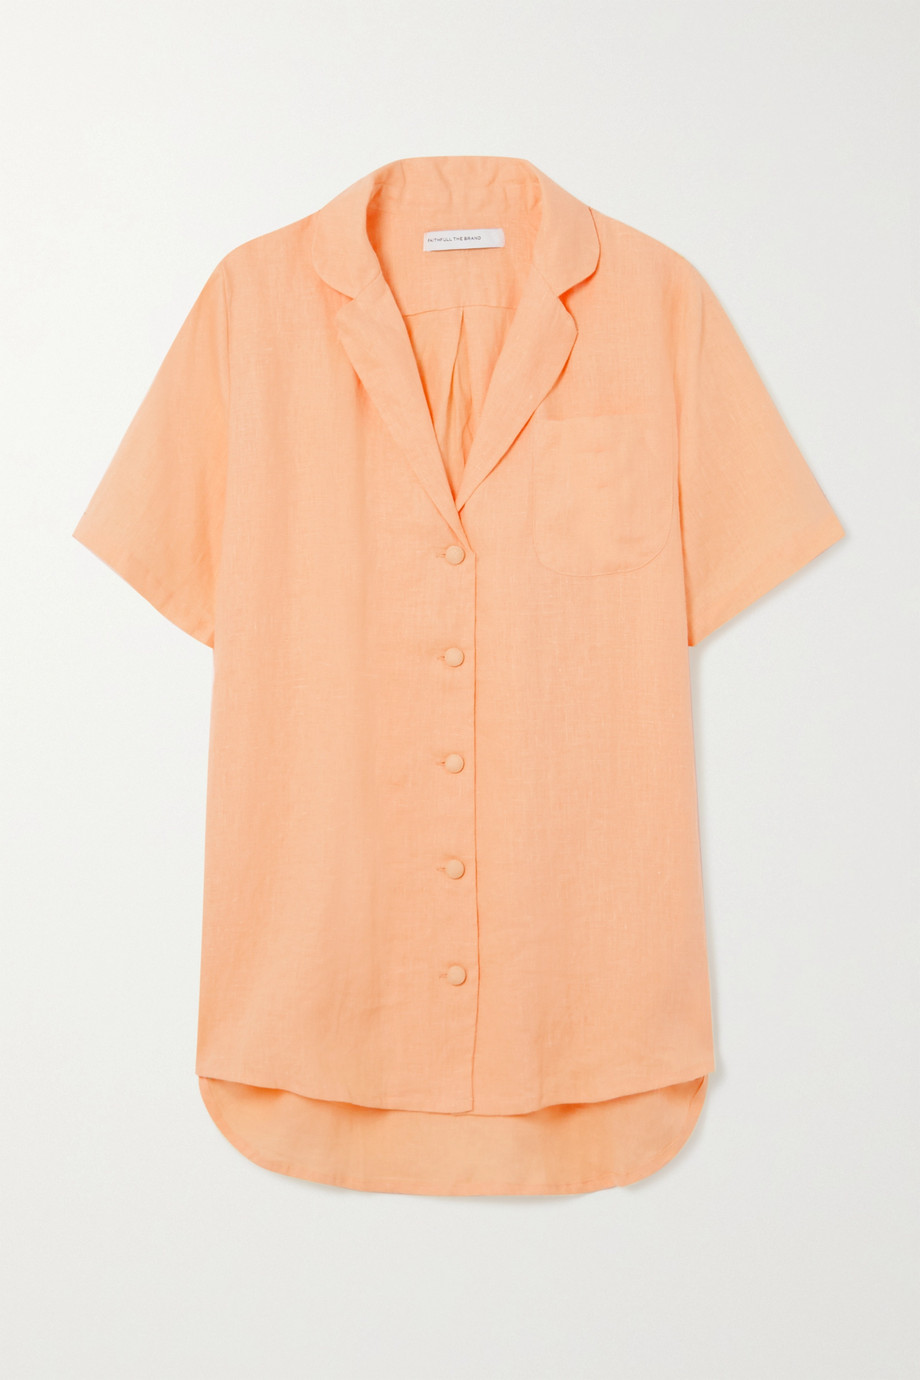 Faithfull The Brand + NET SUSTAIN Charlita linen shirt